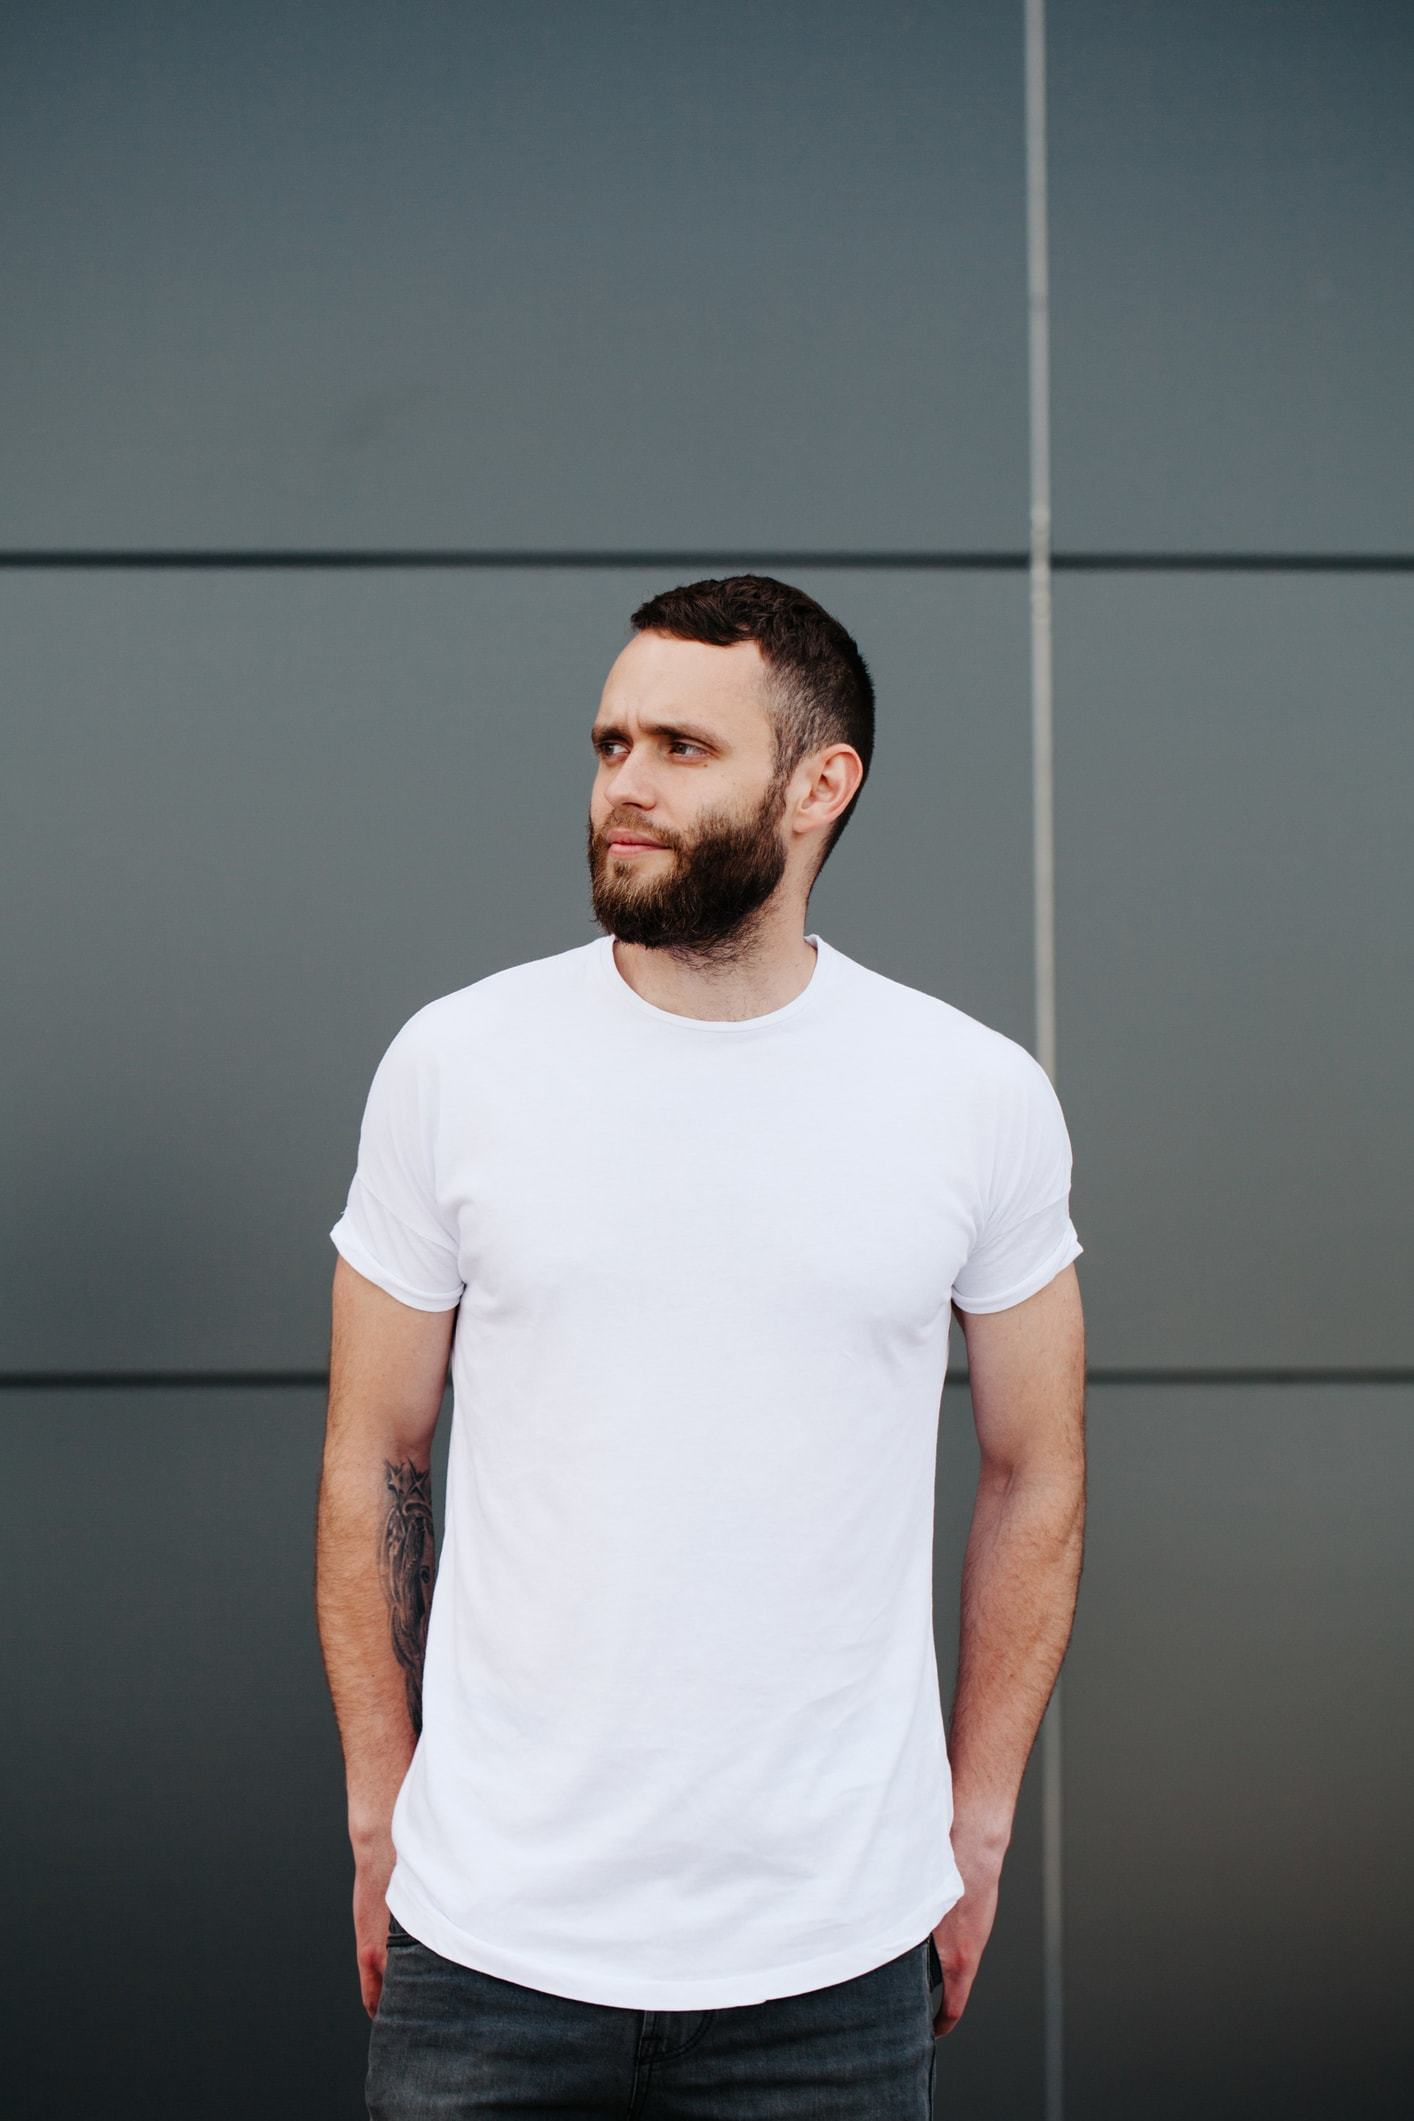 low fade haircut brunette closely shaven beard